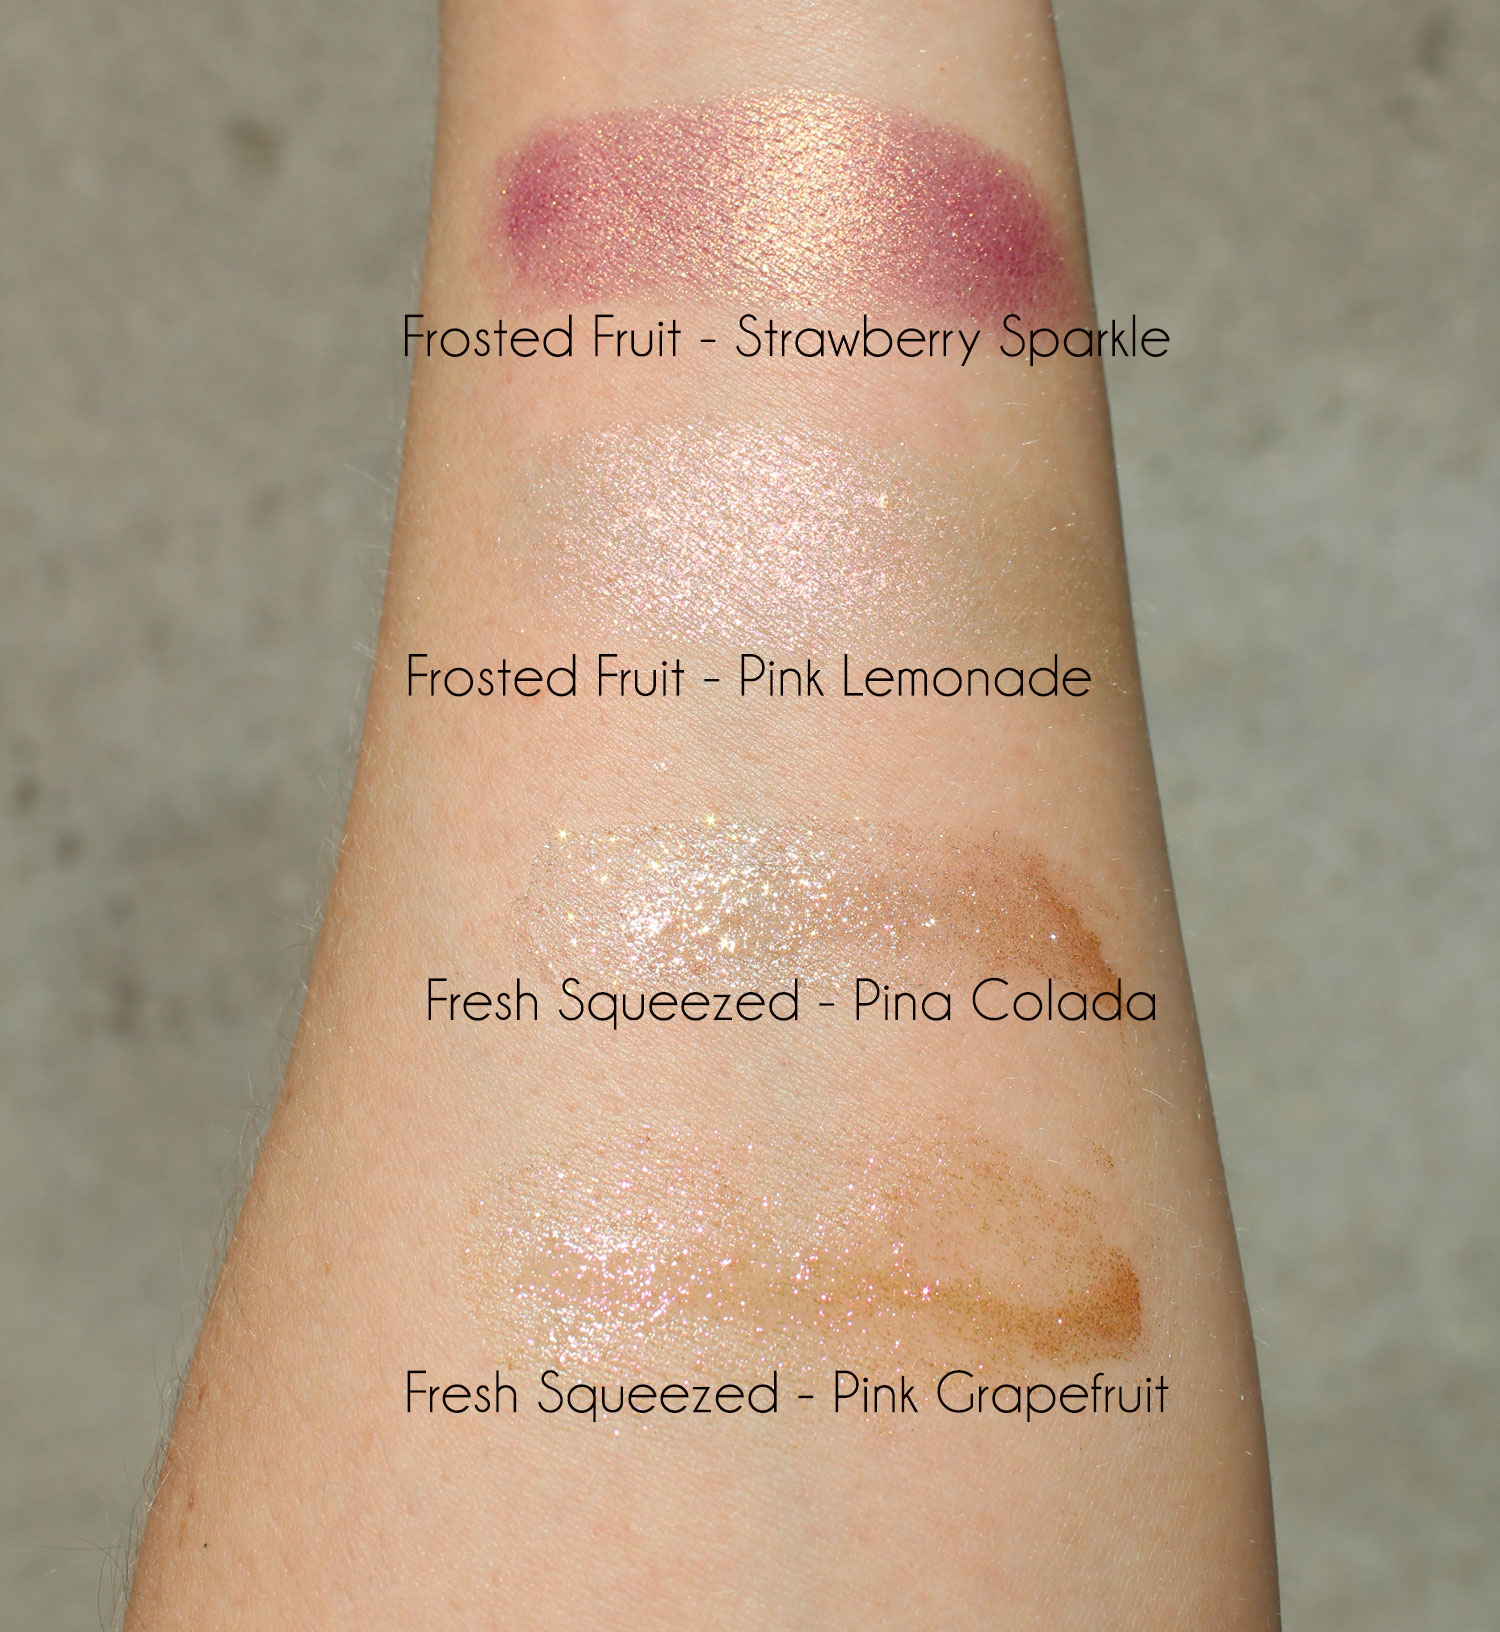 Too Faced Tutti Frutti Frosted Fruits Highlighter Sticks swatches by cruelty free blog My Beauty Bunny